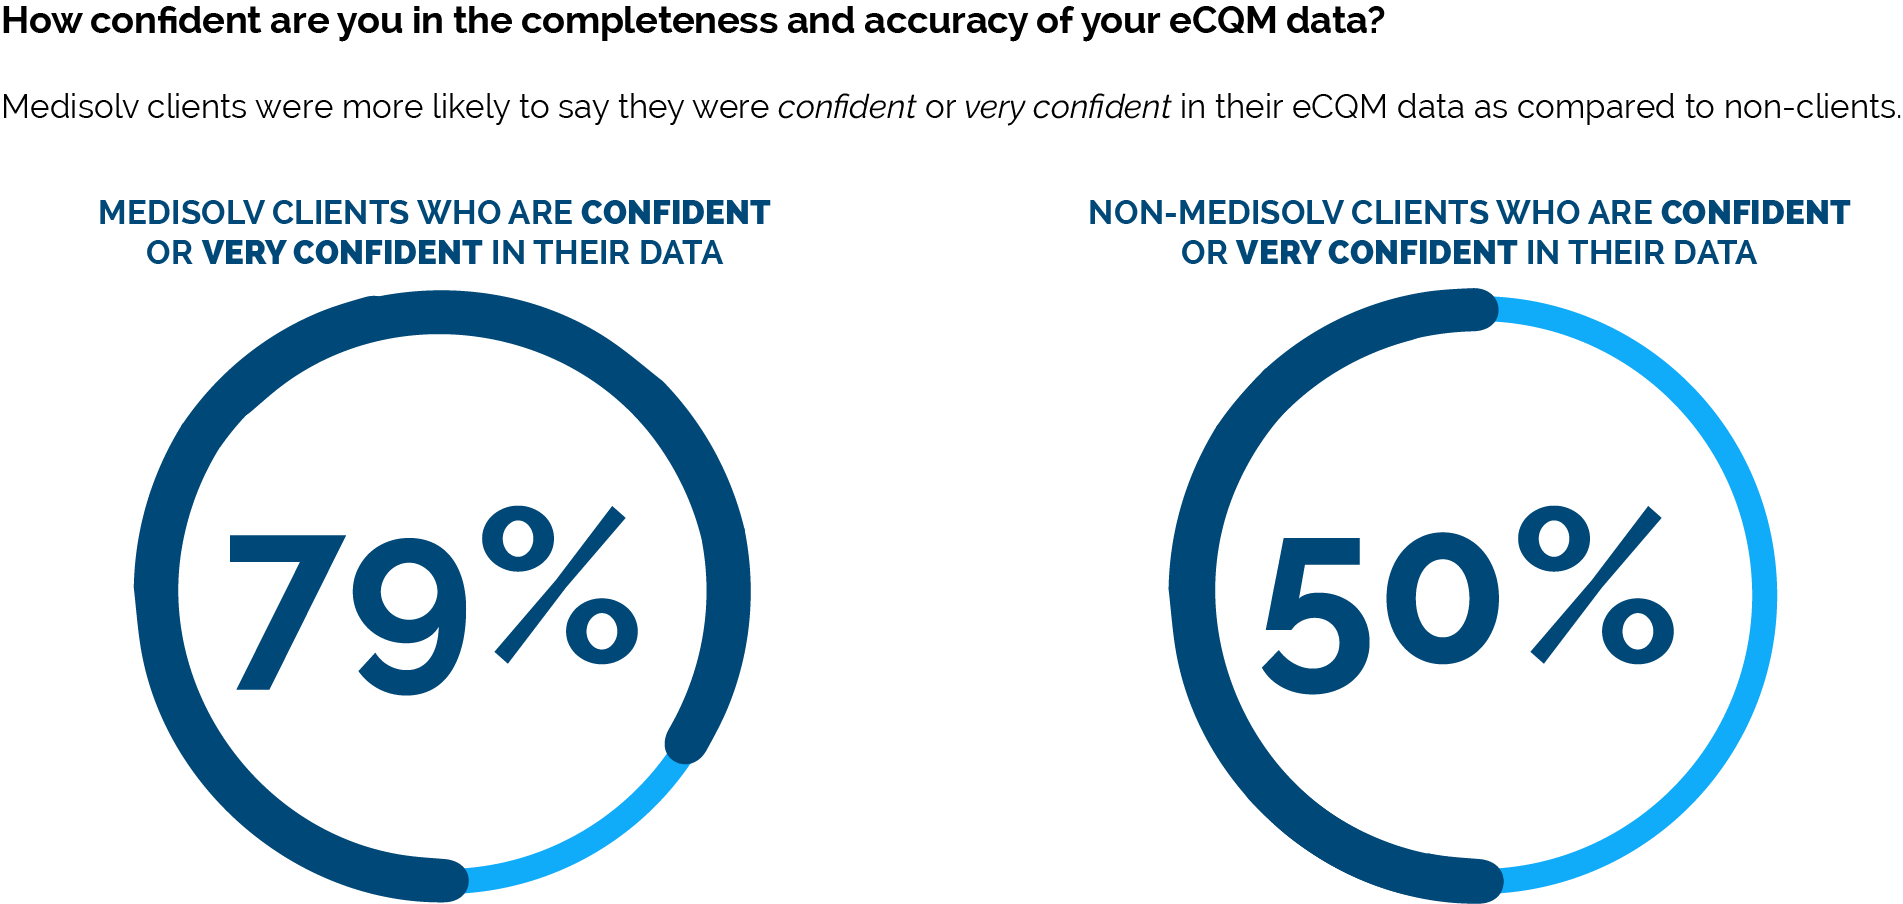 Completeness-eCQM-Data-Comparison-3